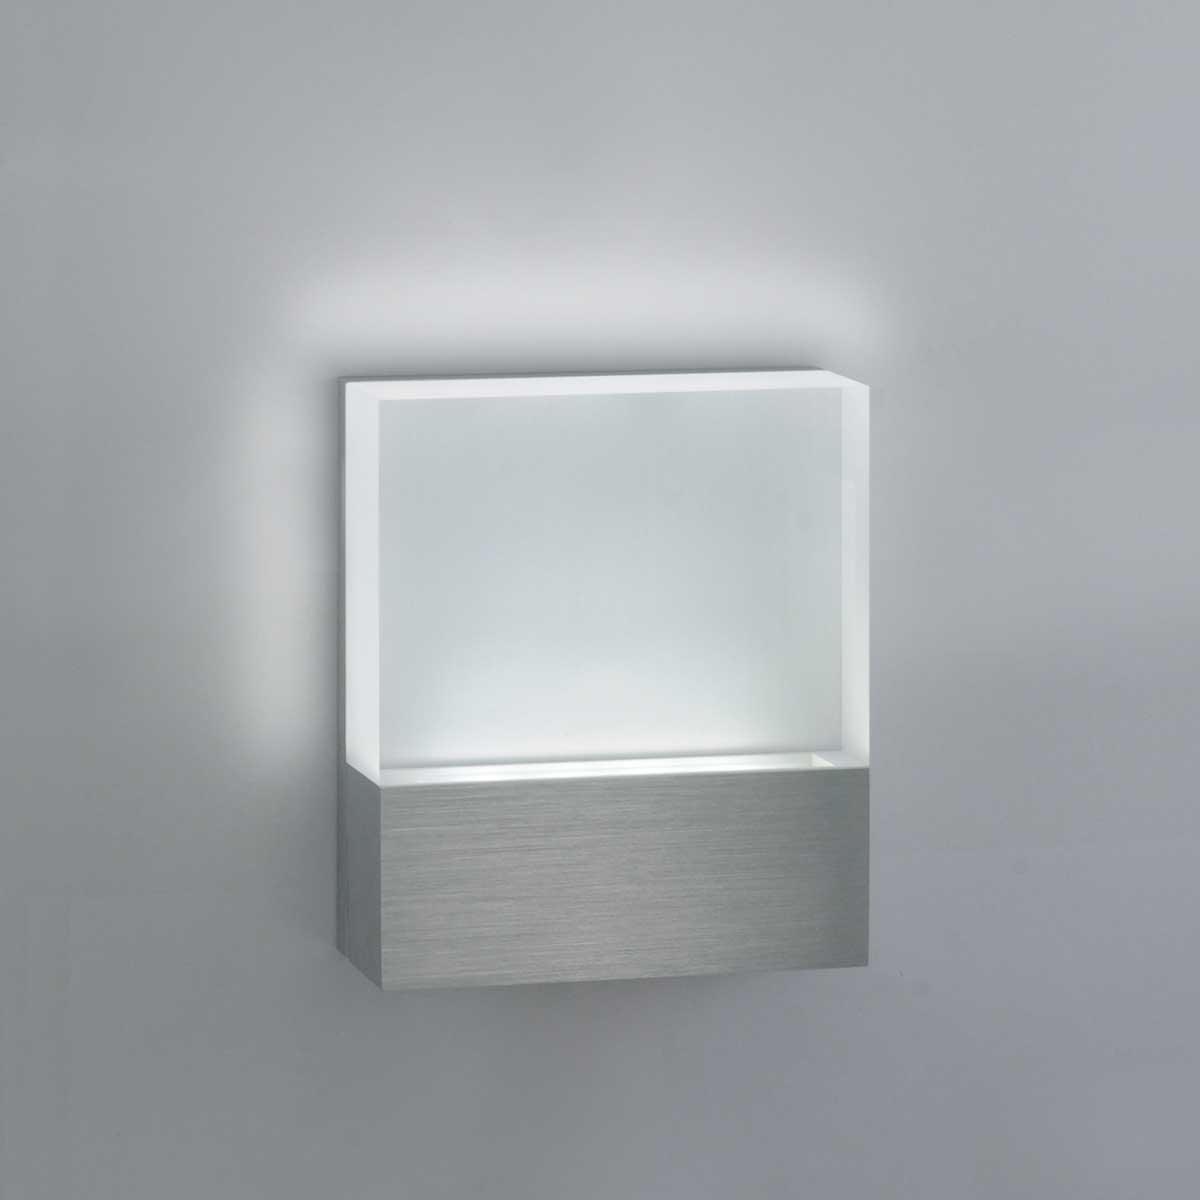 modern-wall-light-fixtures-photo-15